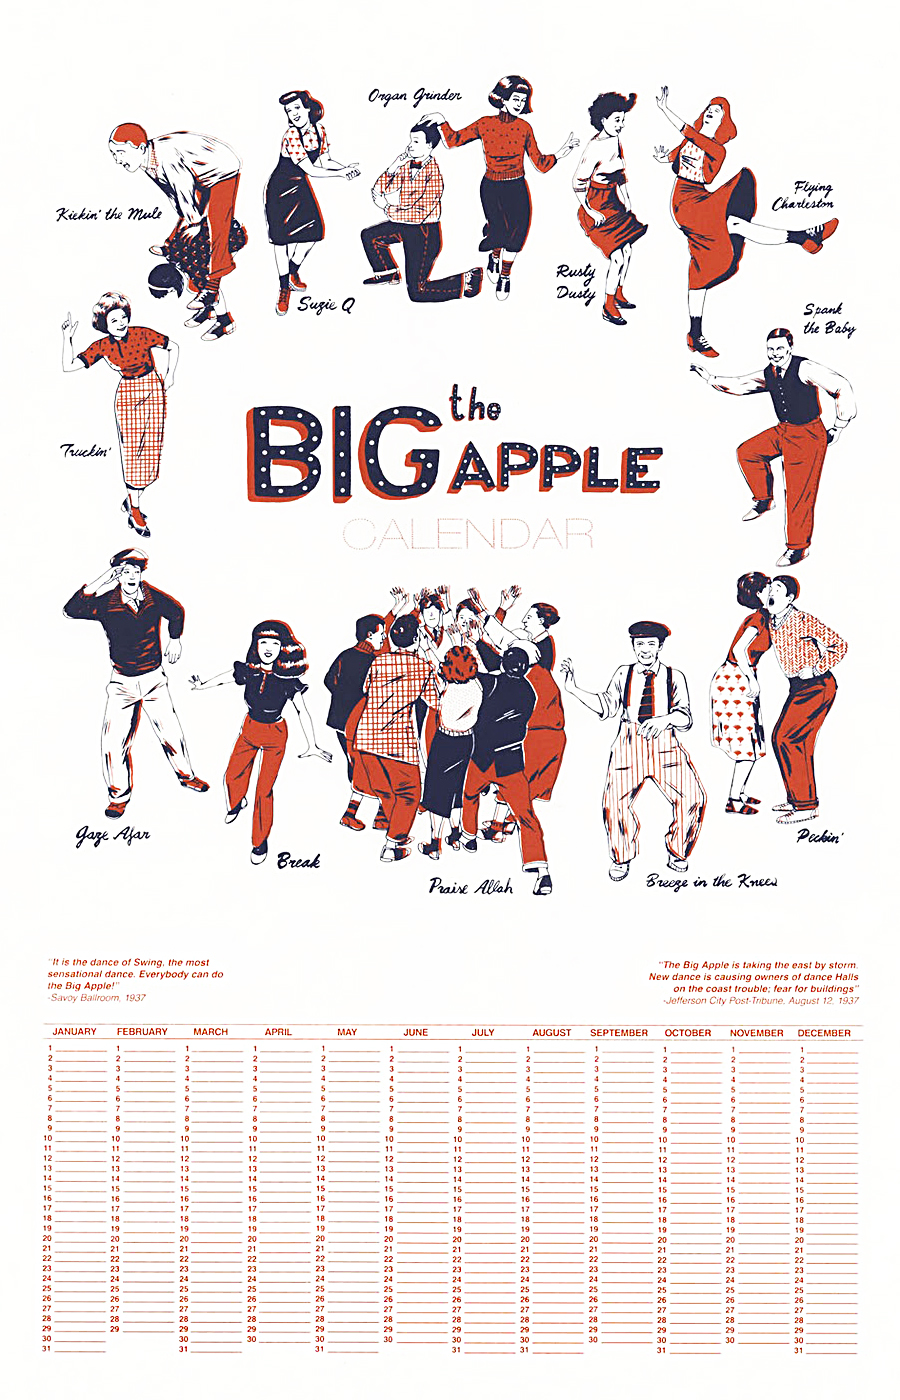 The Big Apple Calendar